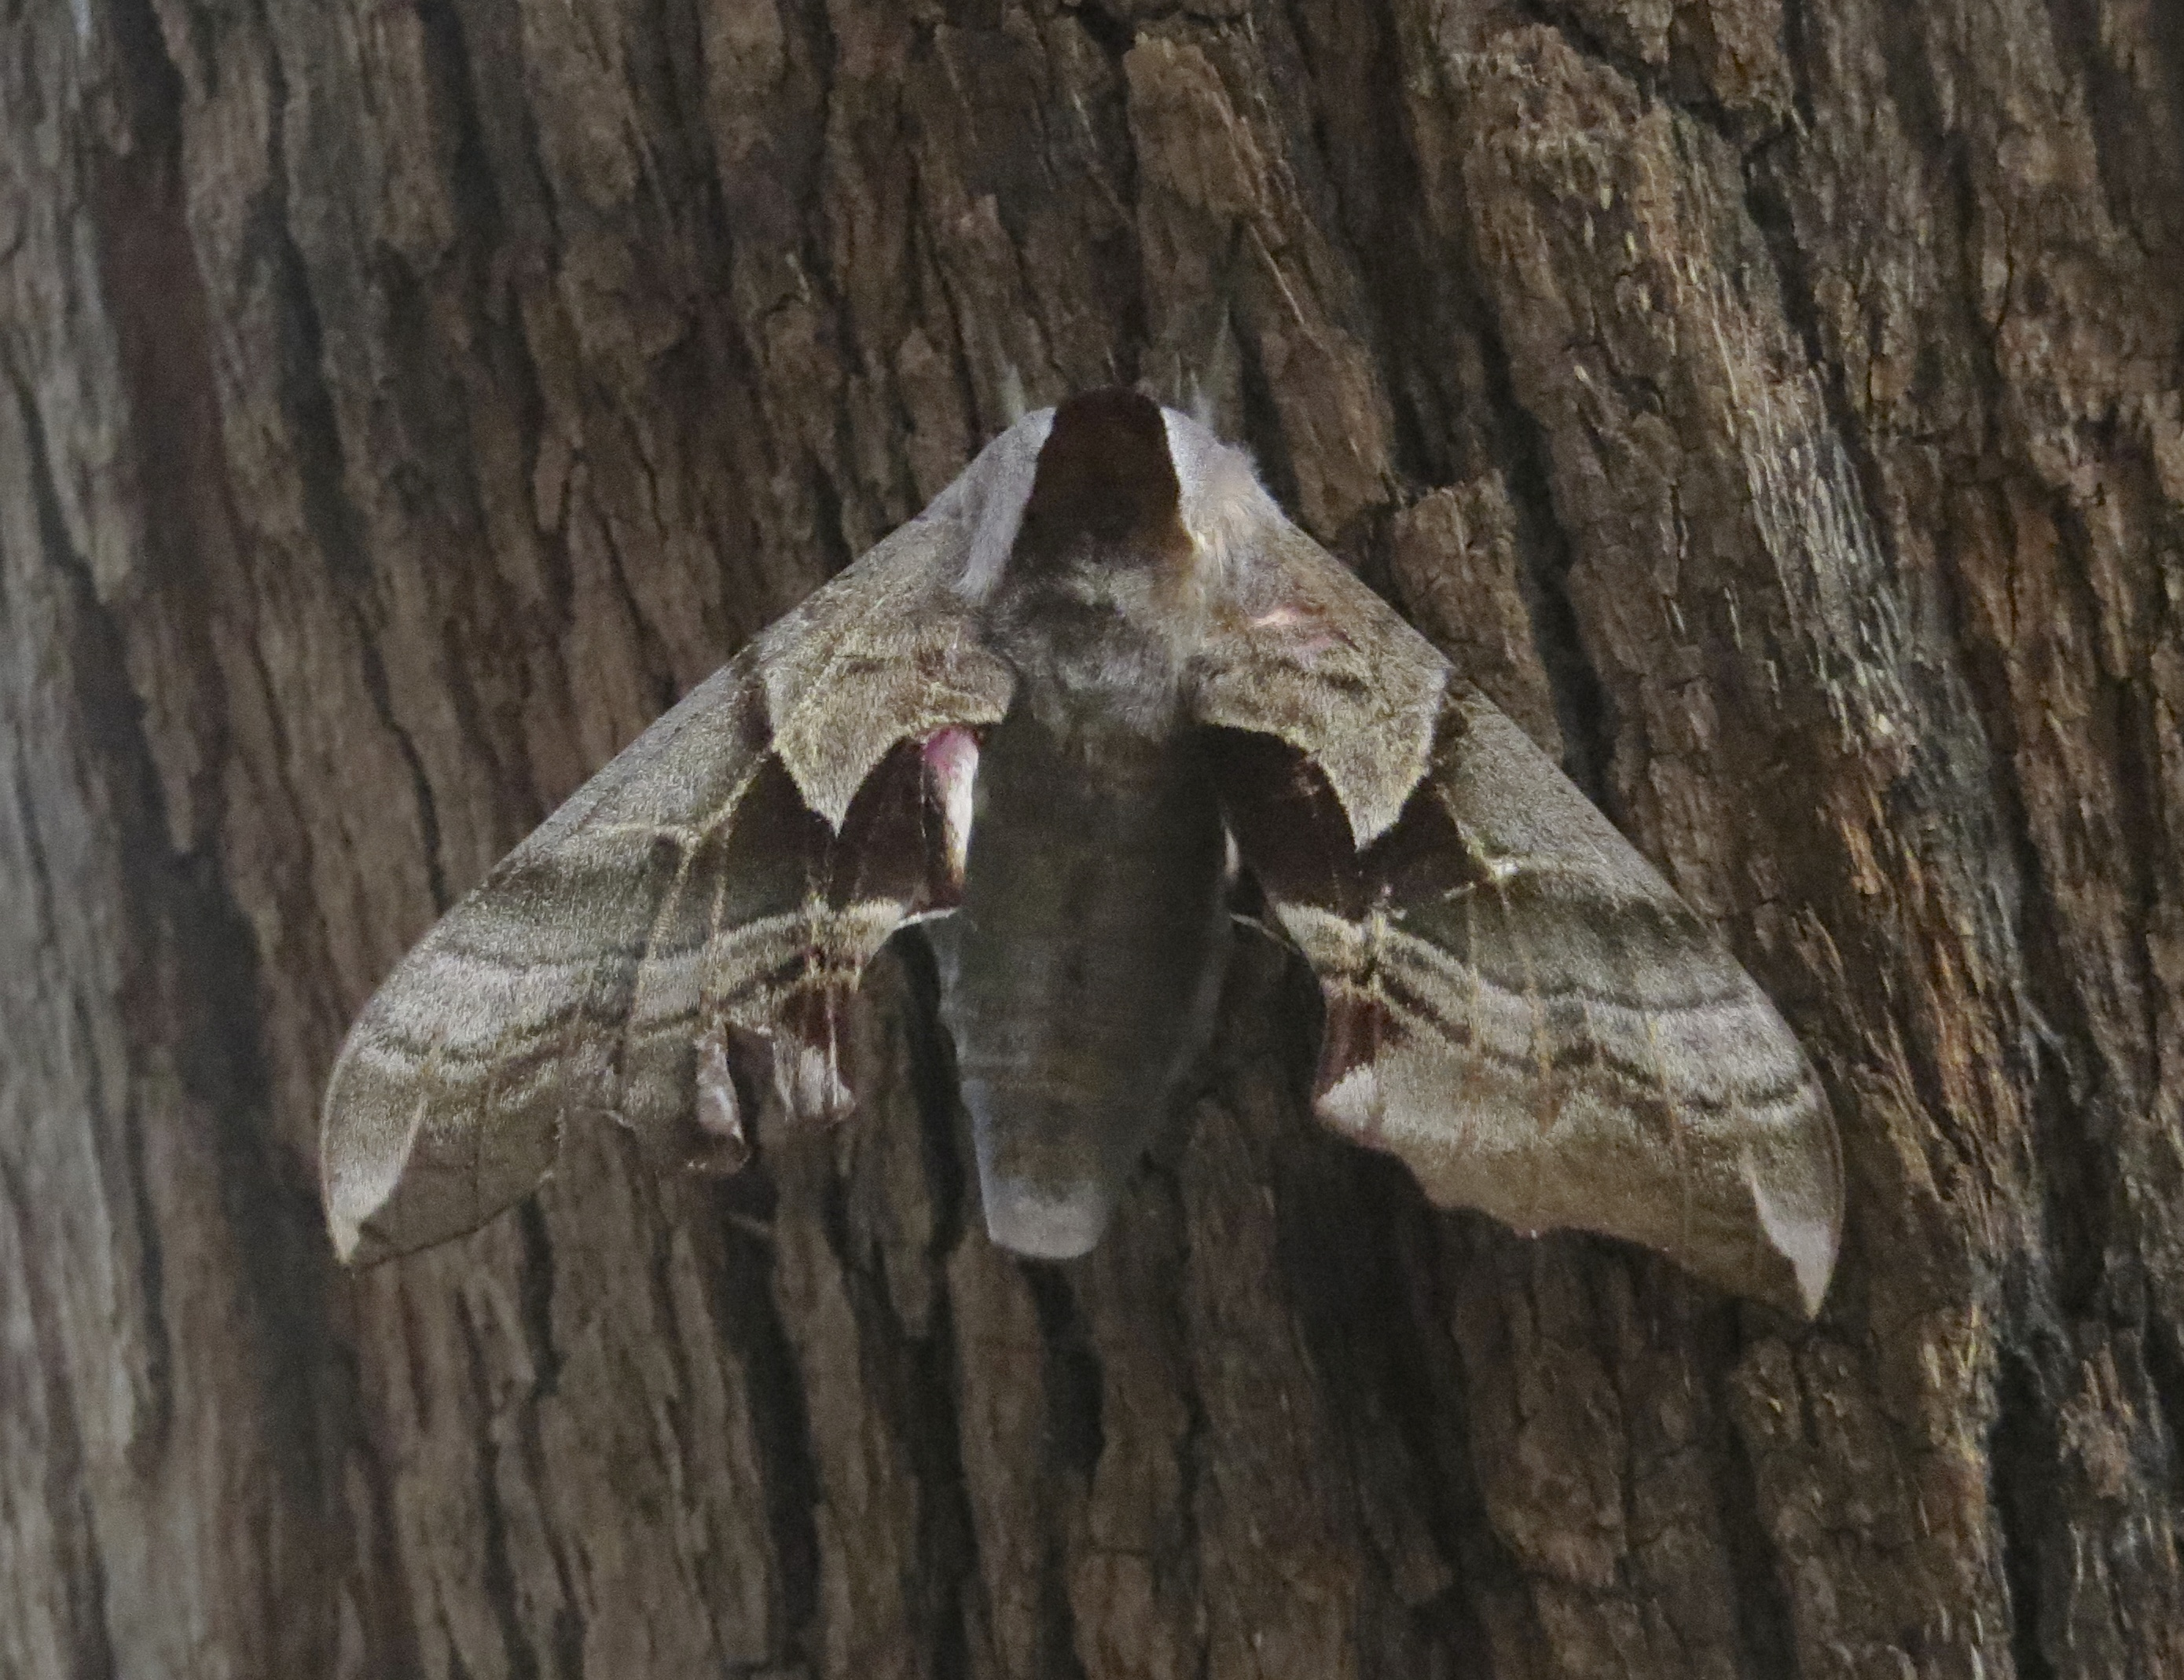 Some Kind Of Moth, I Don't Know, What?